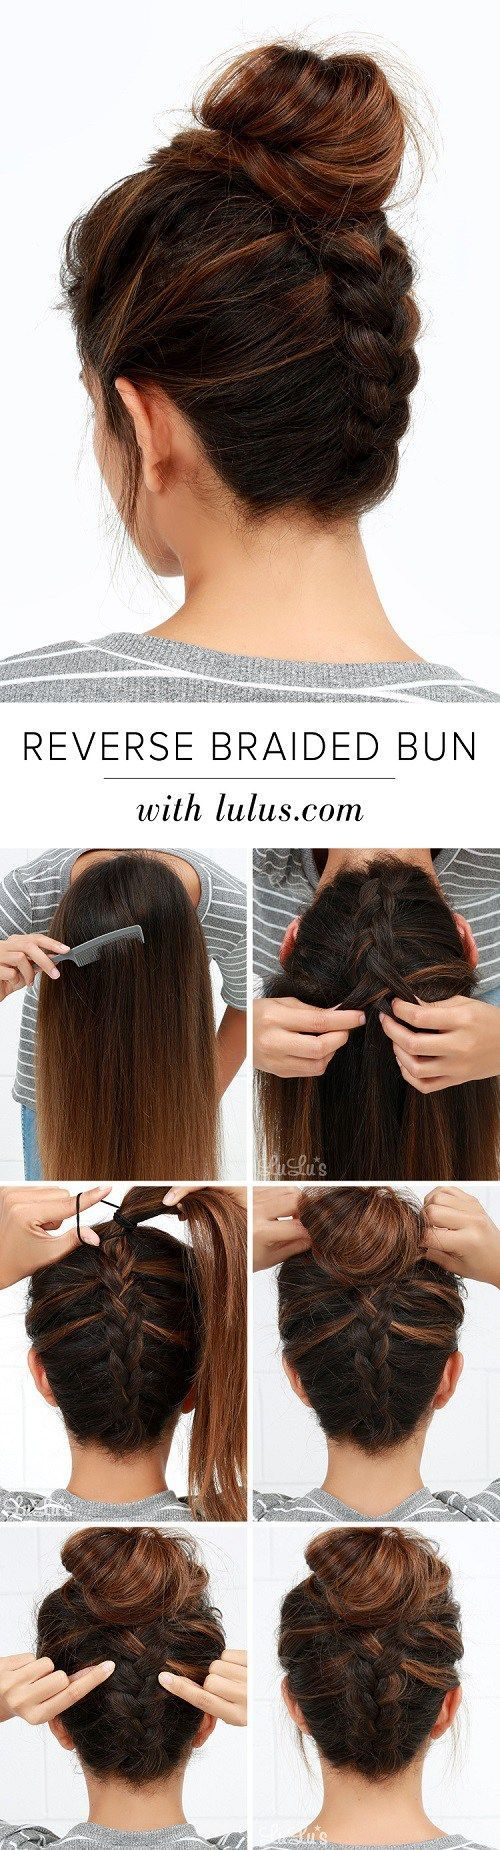 best hair how tos images on pinterest cute hairstyles